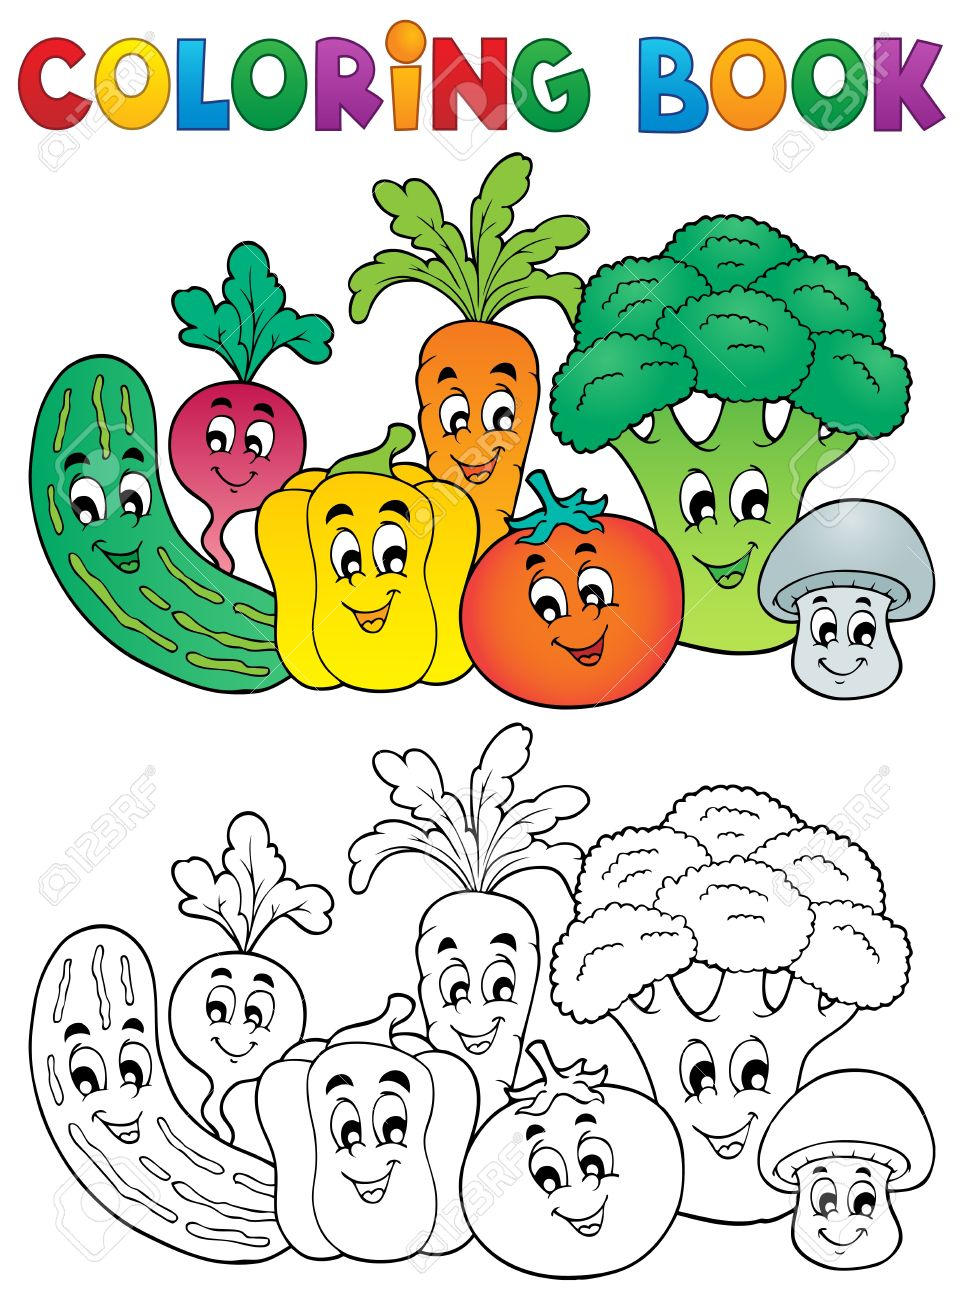 Coloring Book Vegetables Theme Coloring Books Coloring Book Download Coloring Pages